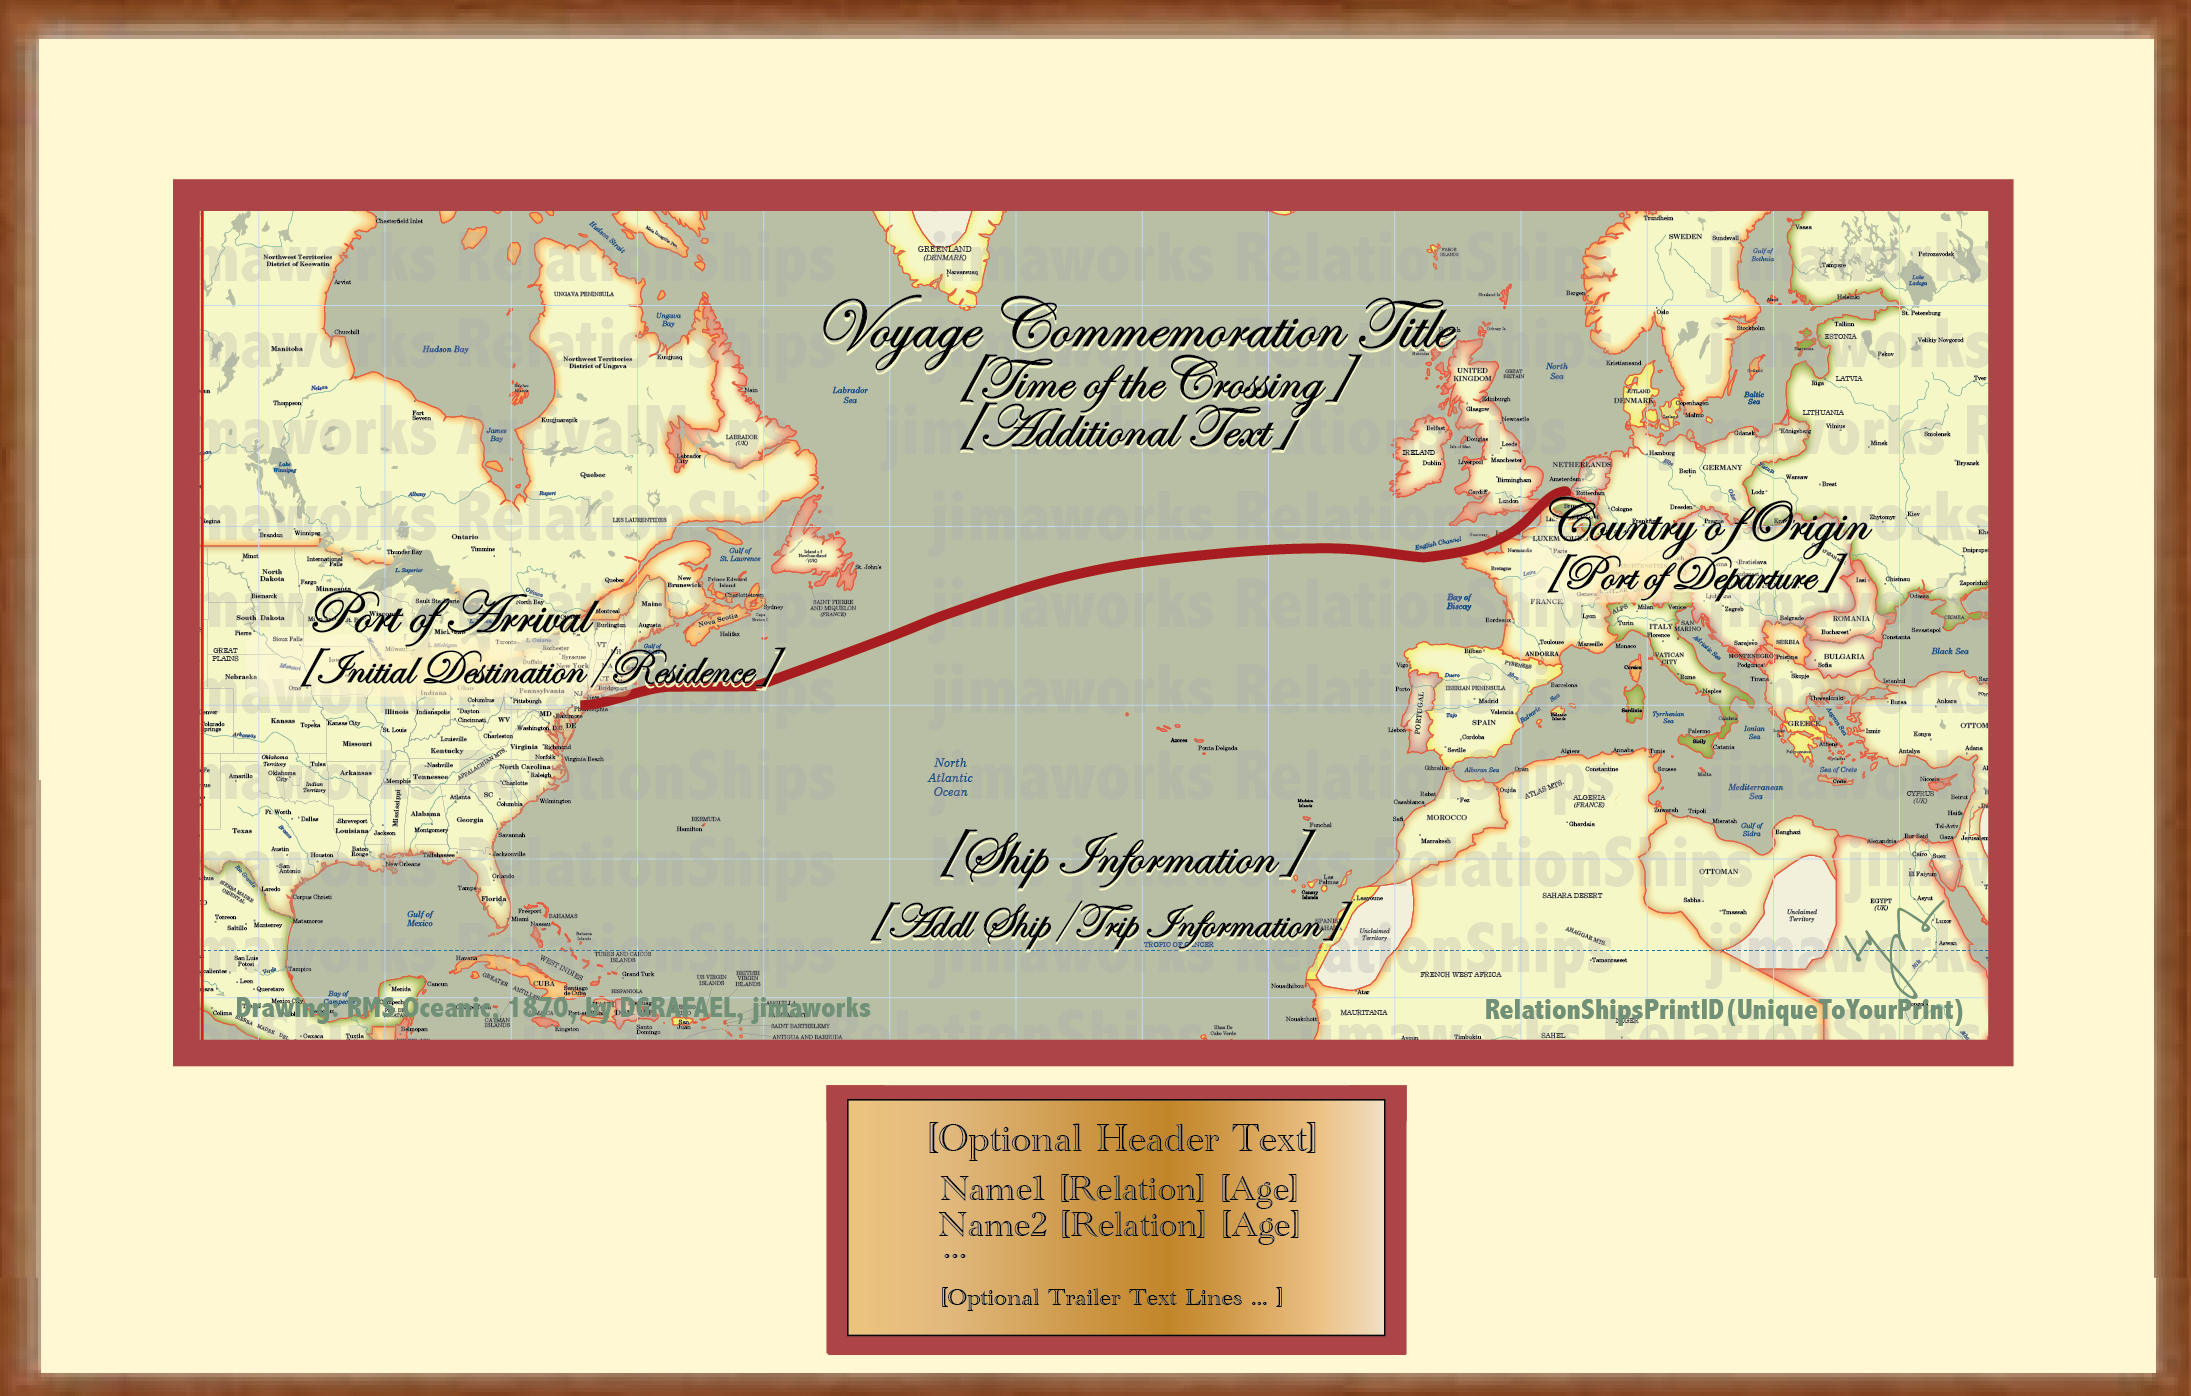 Skip the Ship - commemorate the crossing with a map-only display